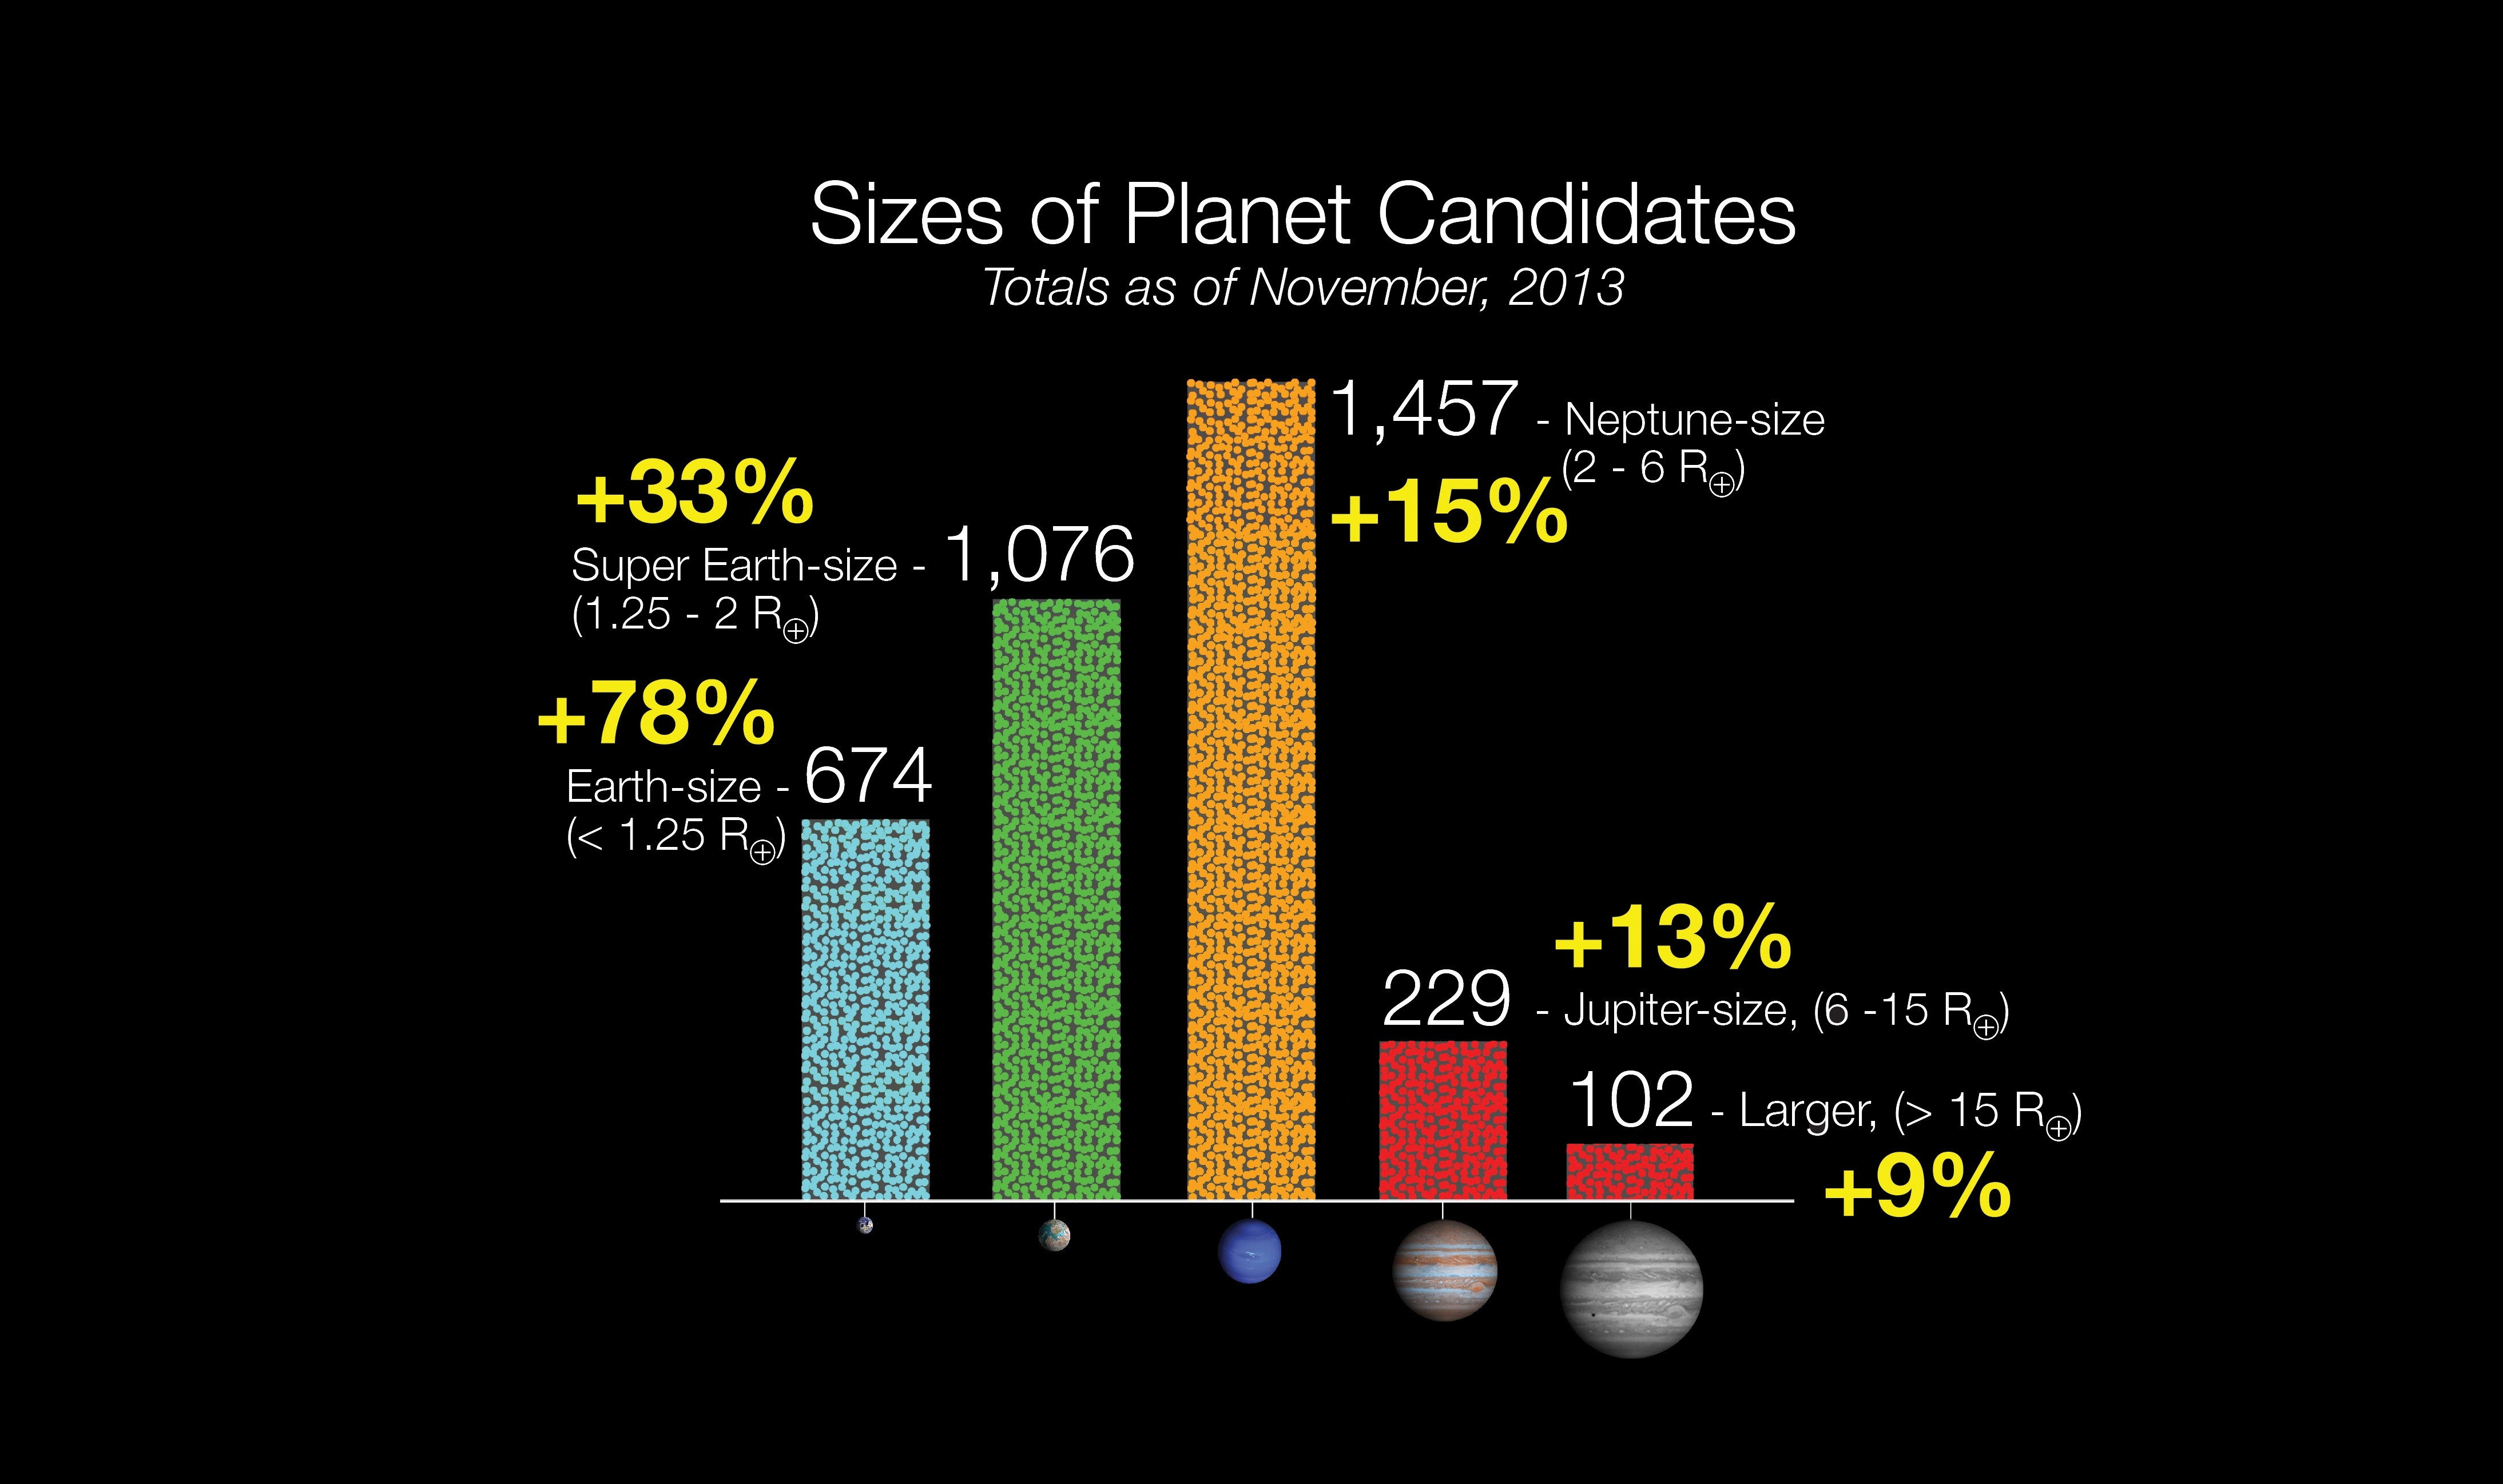 New Inhabited Planet Candidate Sizes Histo Wide